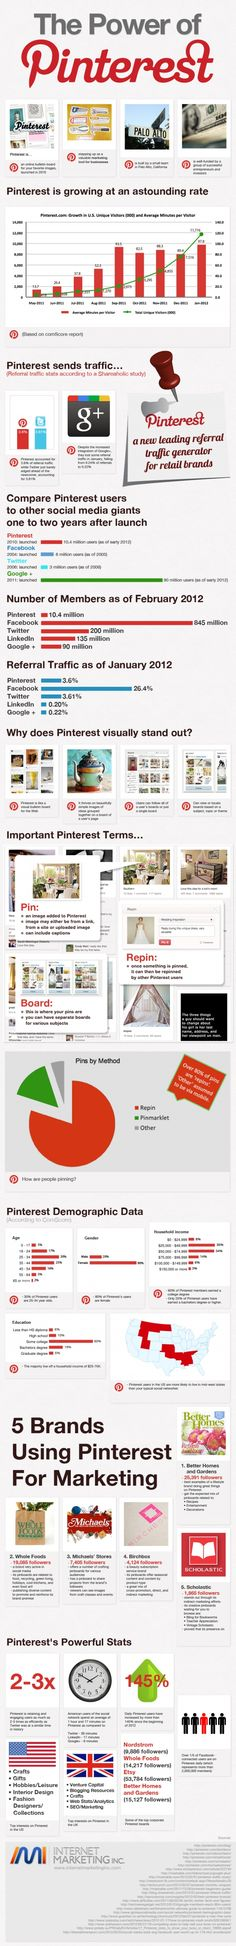 The everything you need to know about Pinterest #infographic.